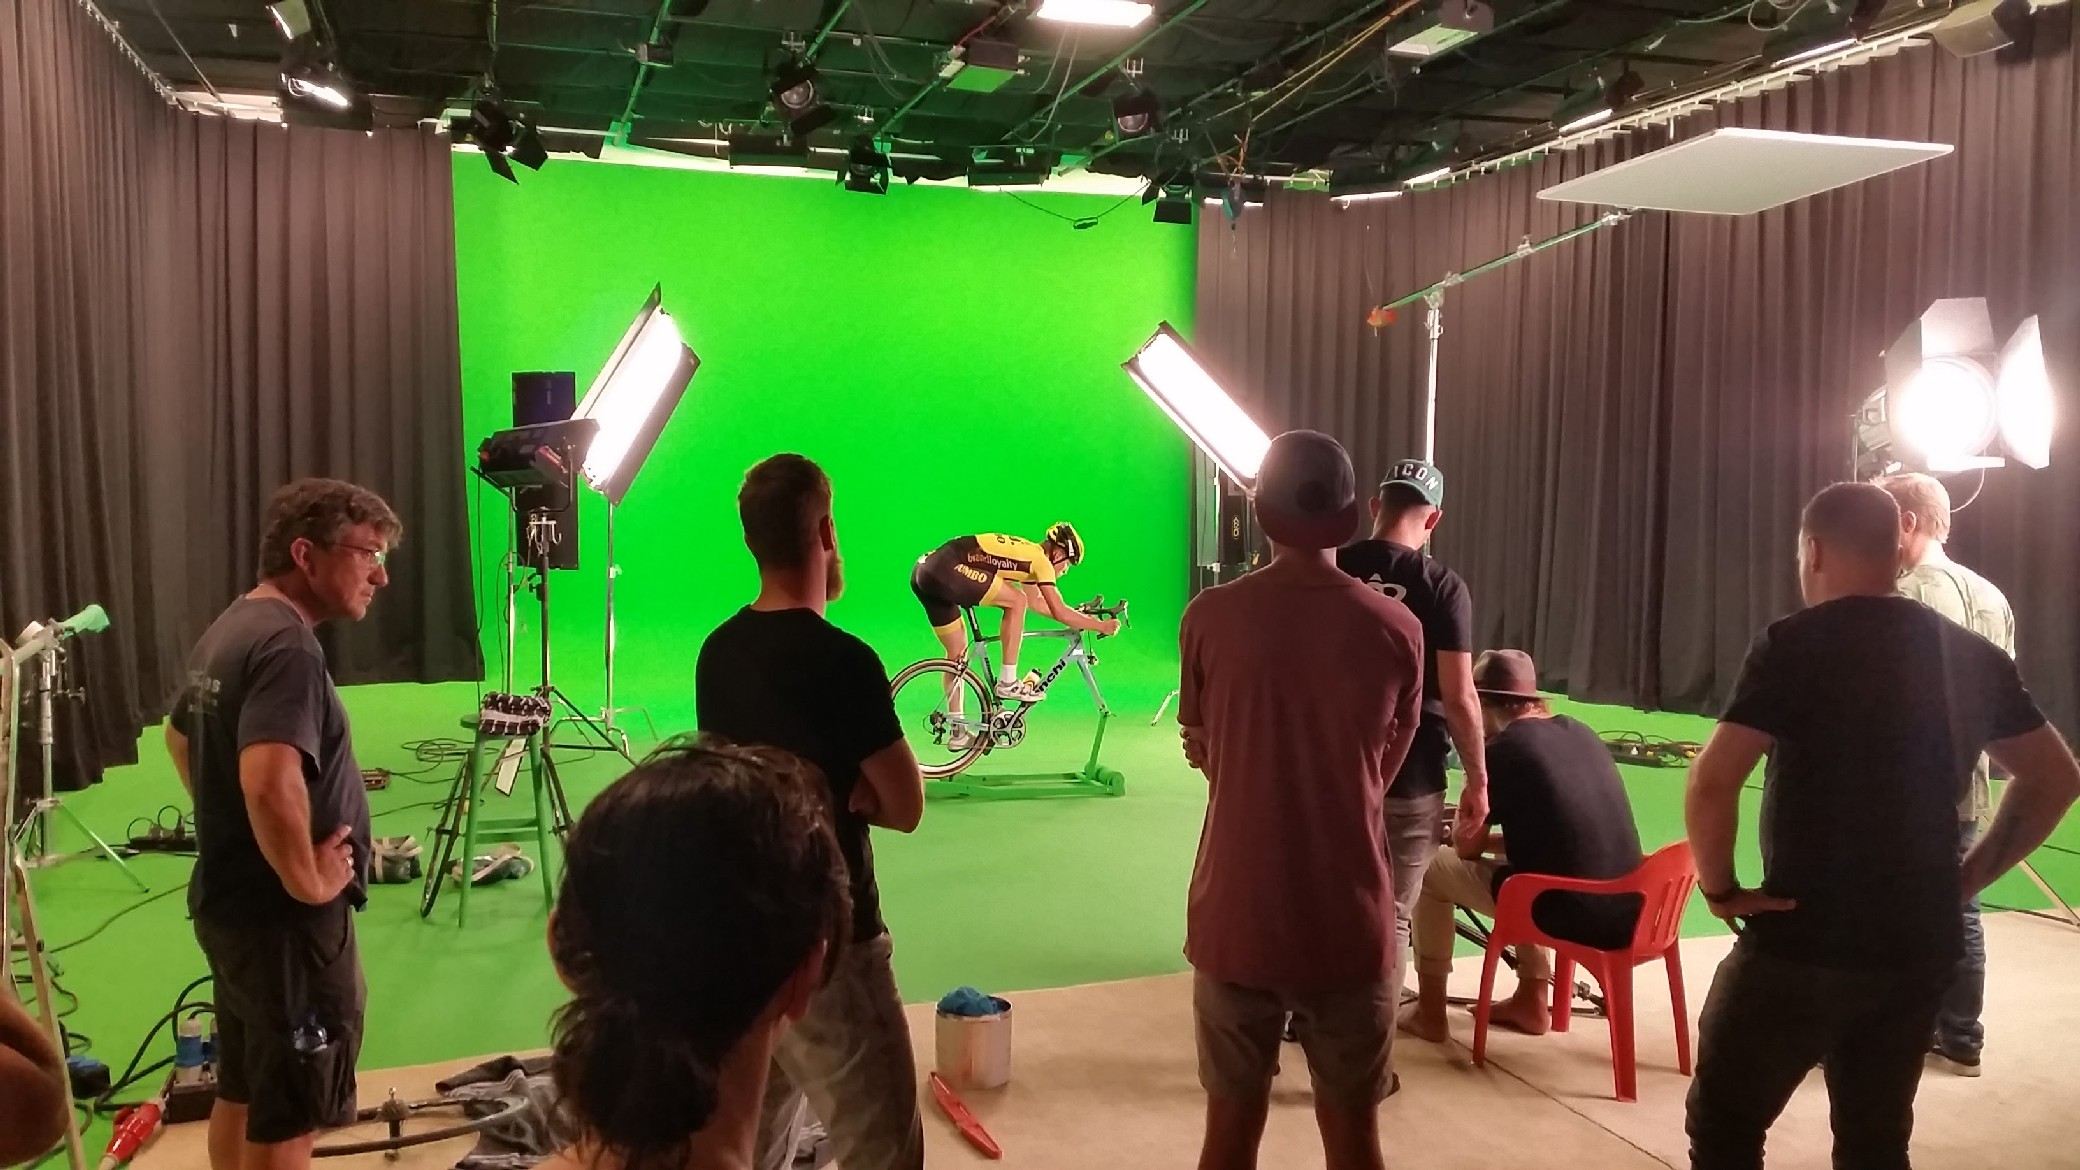 wielrenner greenscreen studio